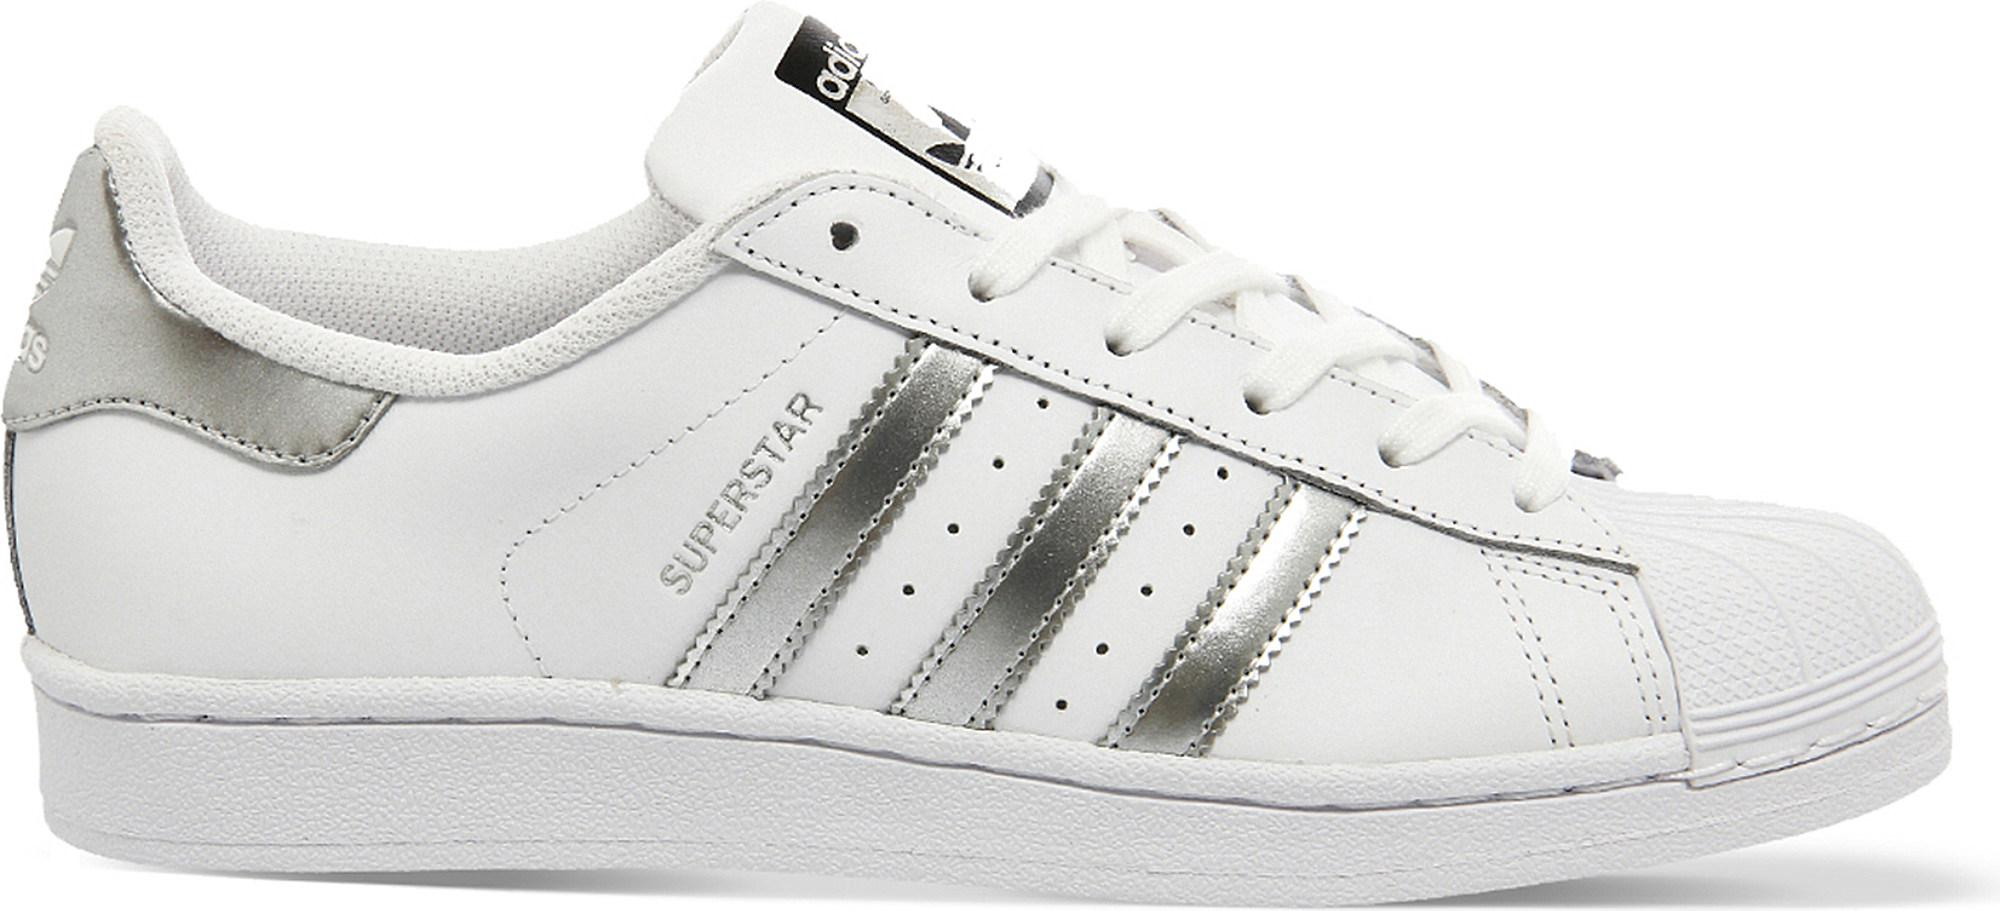 premium selection d256b 44010 adidas Superstar 1 Leather Trainers in White - Lyst